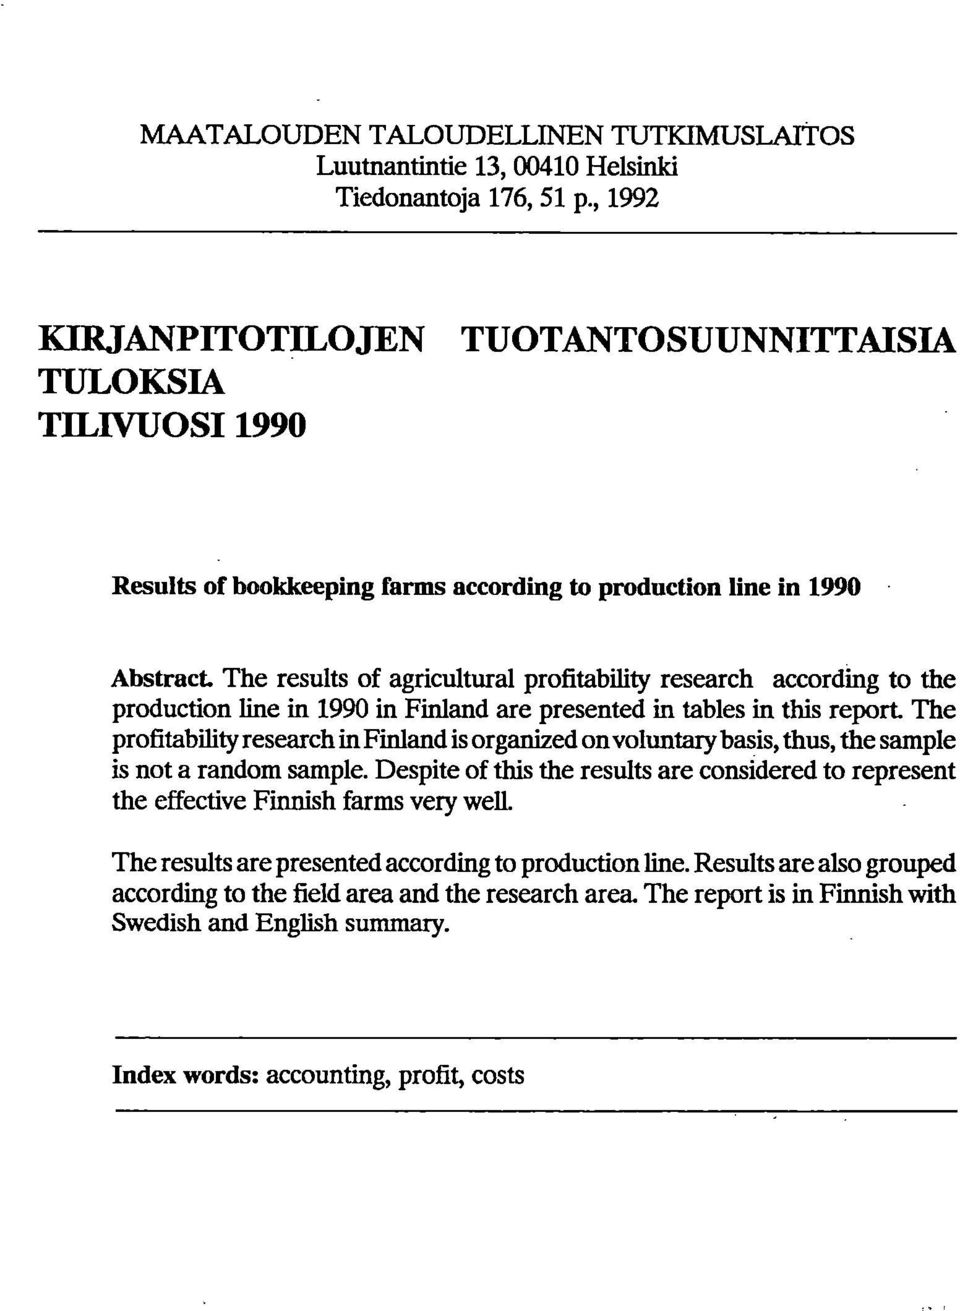 The results of agricultural profitability research according to the production line in 990 in Finland are presented in tables in this report.